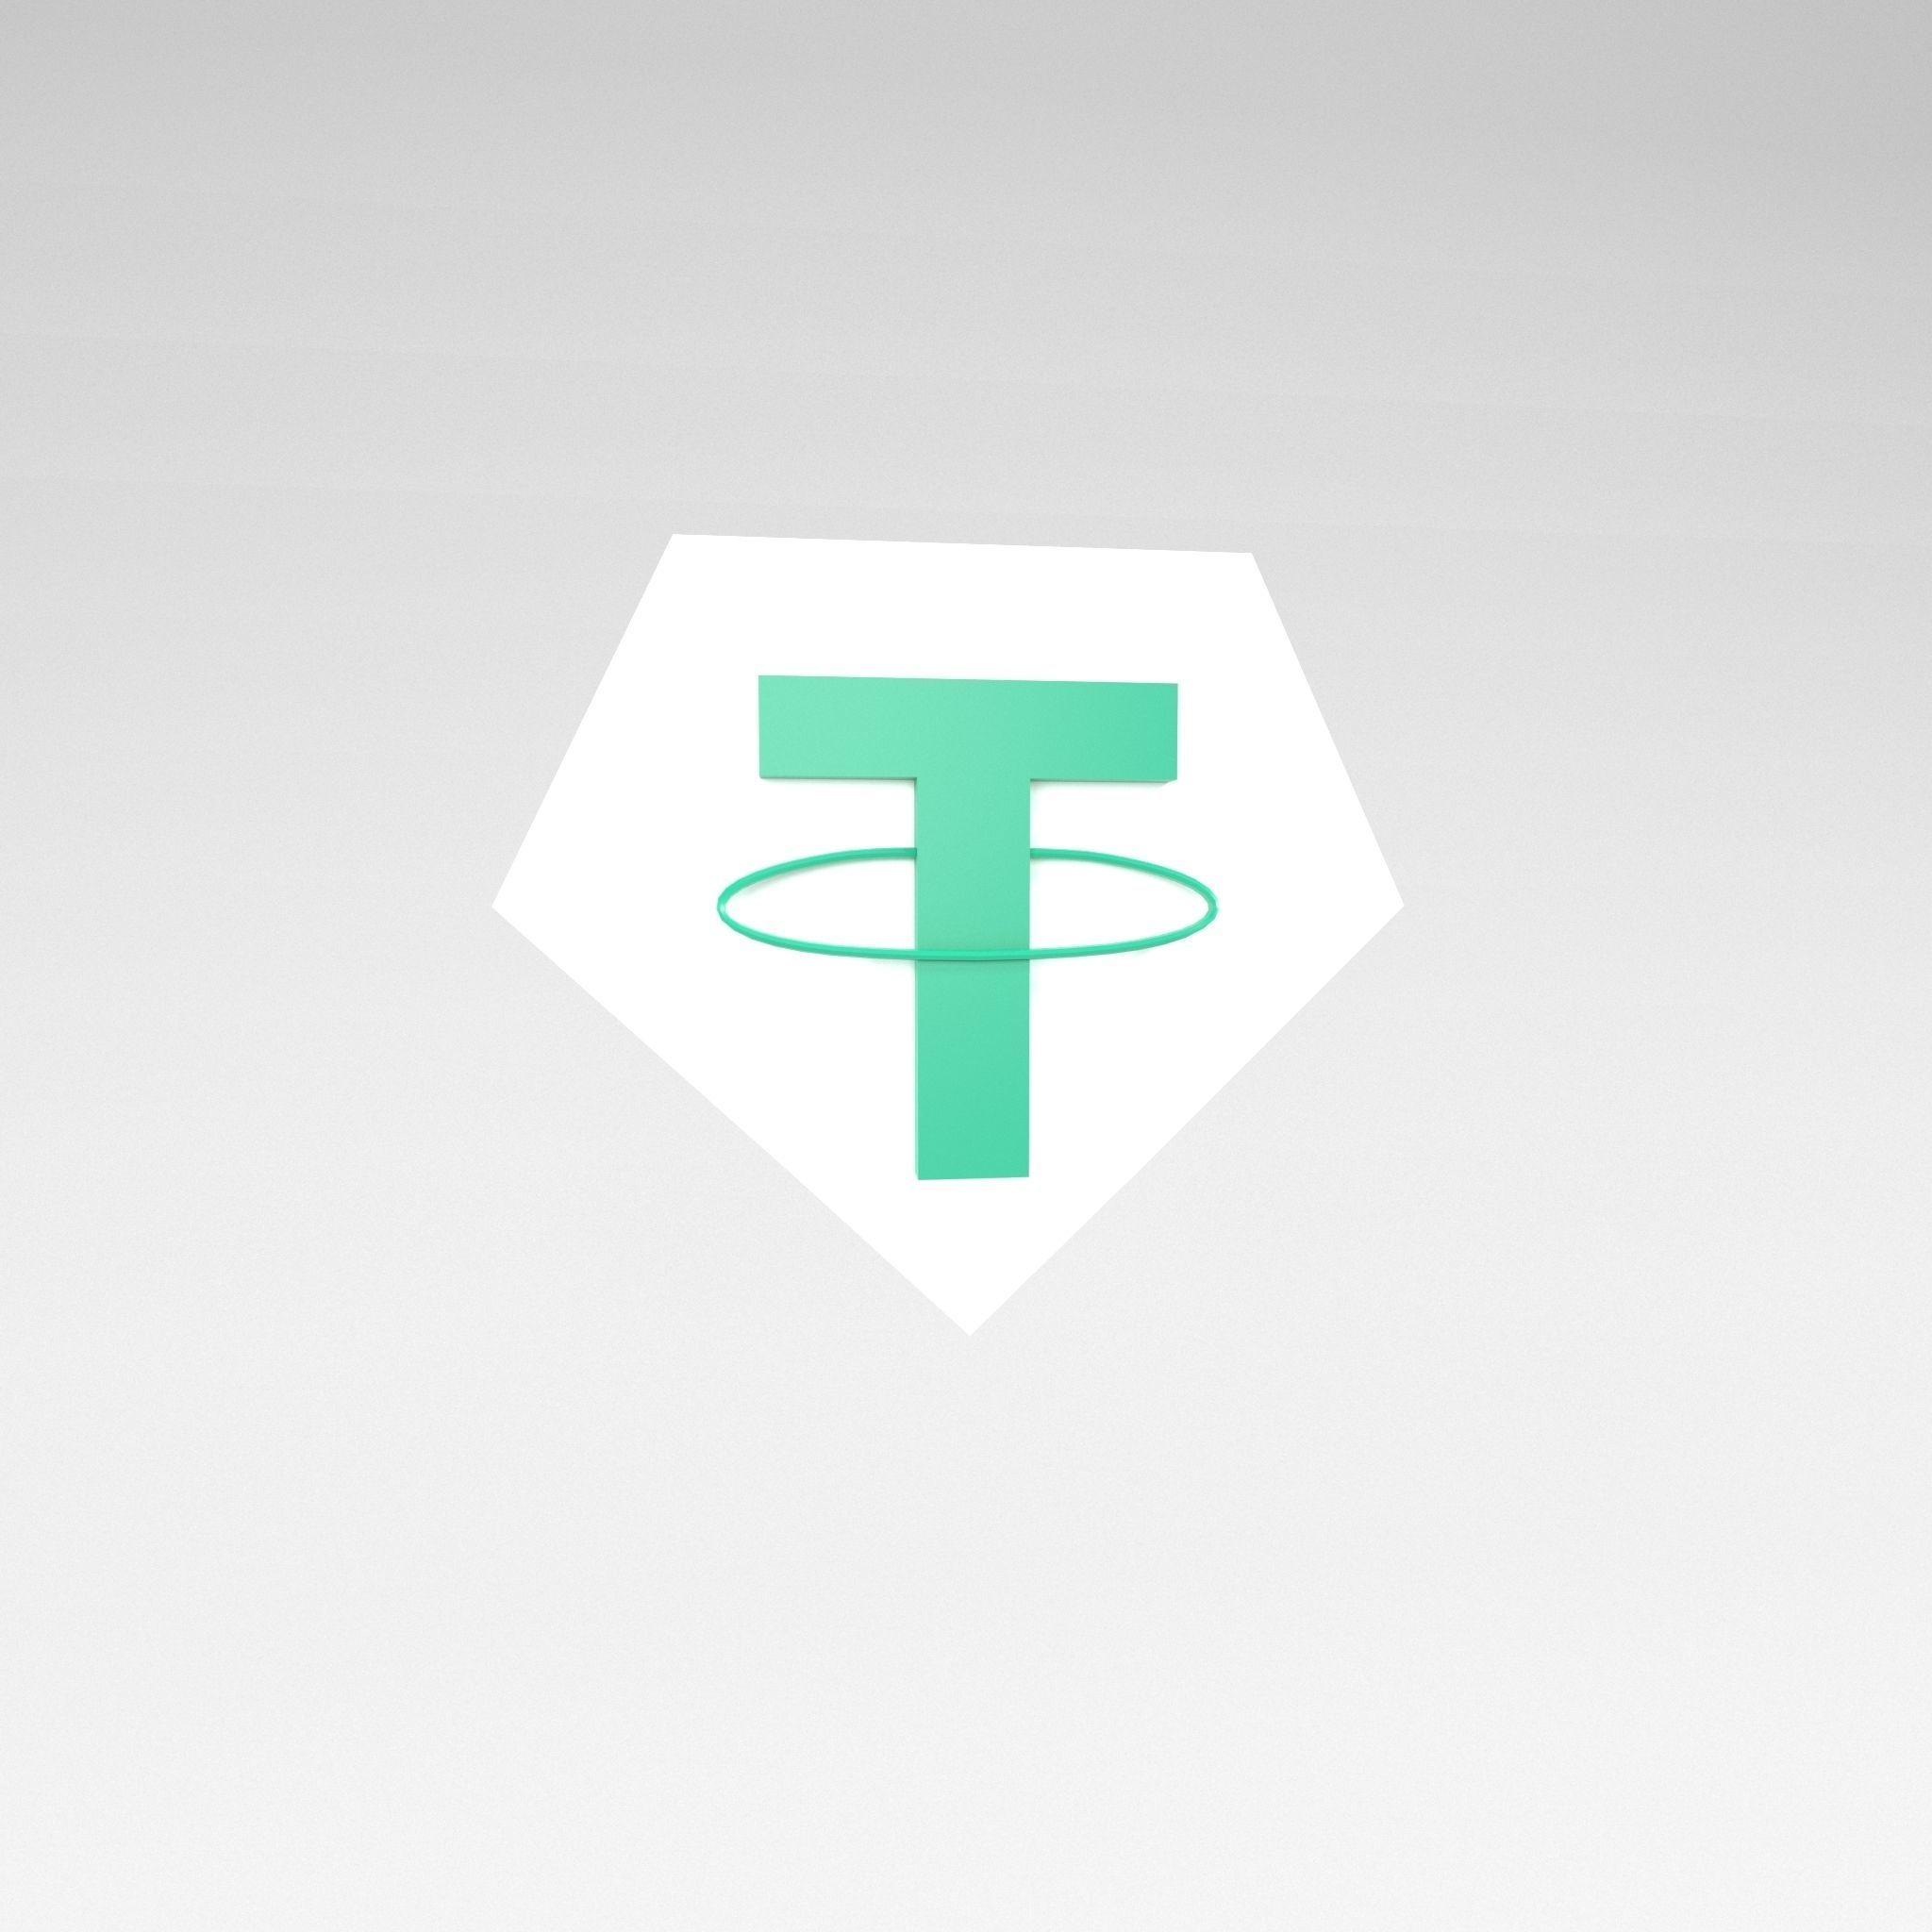 tether cryptocurrency ár